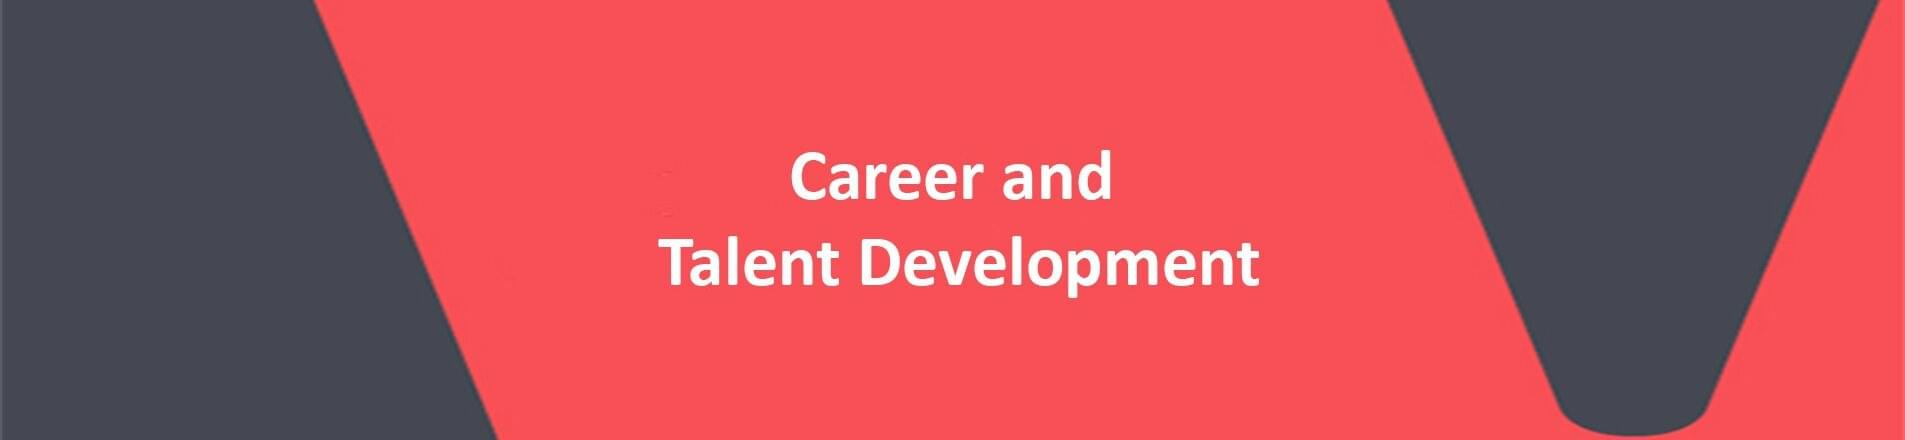 White text on red background, spelling out Career and Talent Development.